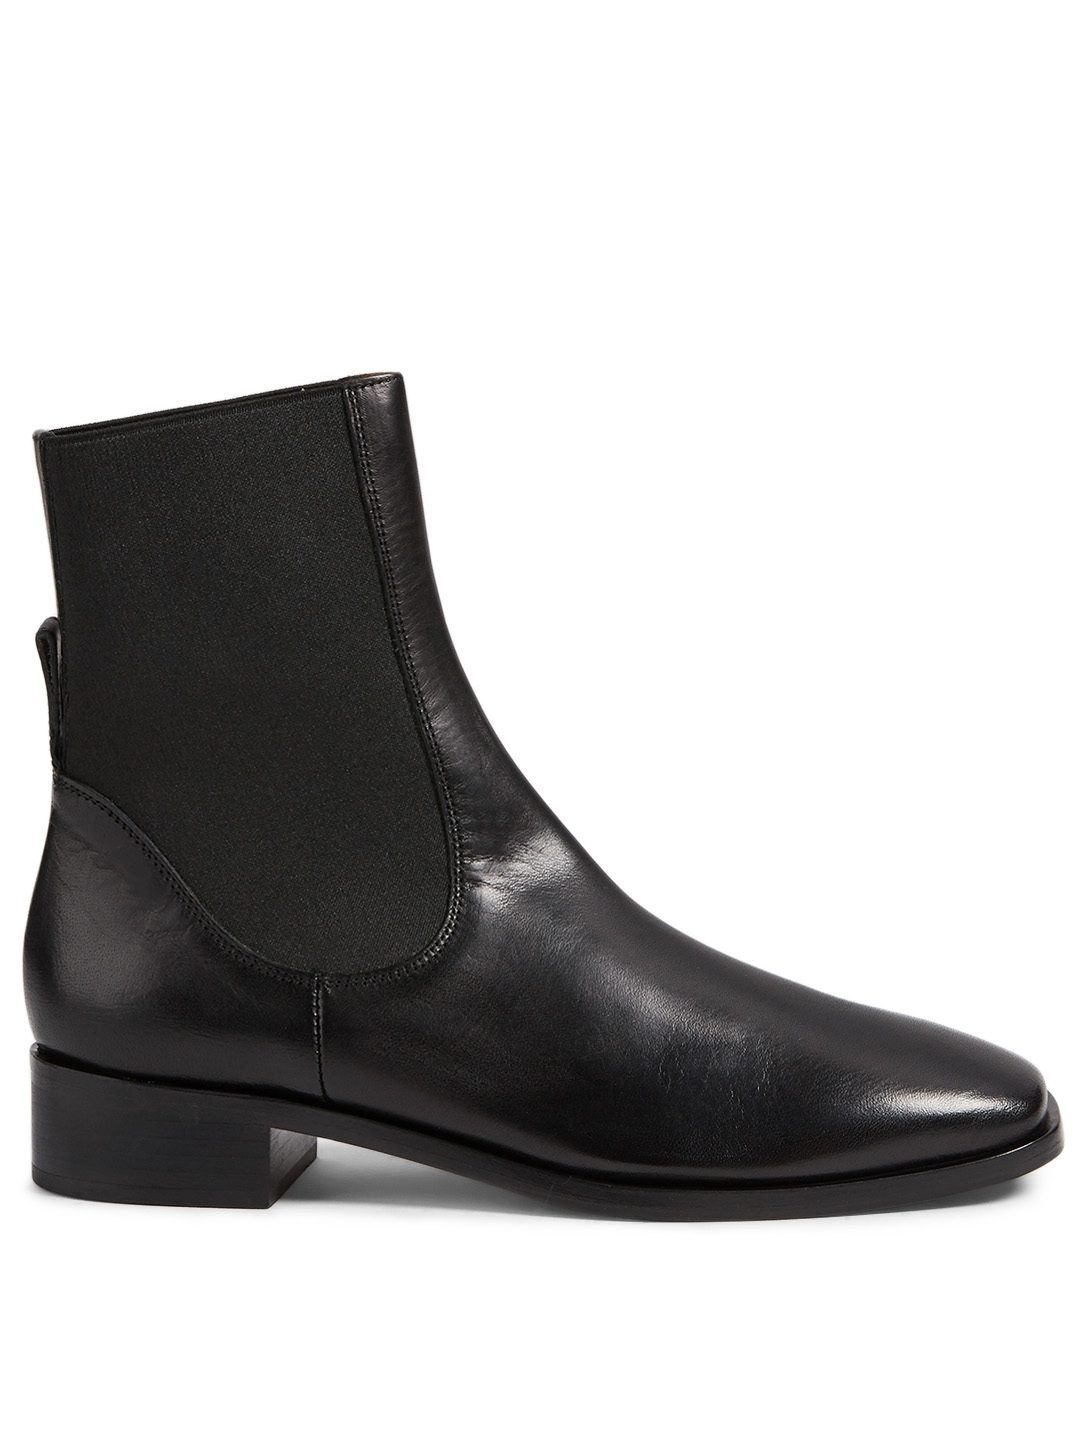 vernazza-leather-chelsea-boots by holt-renfrew